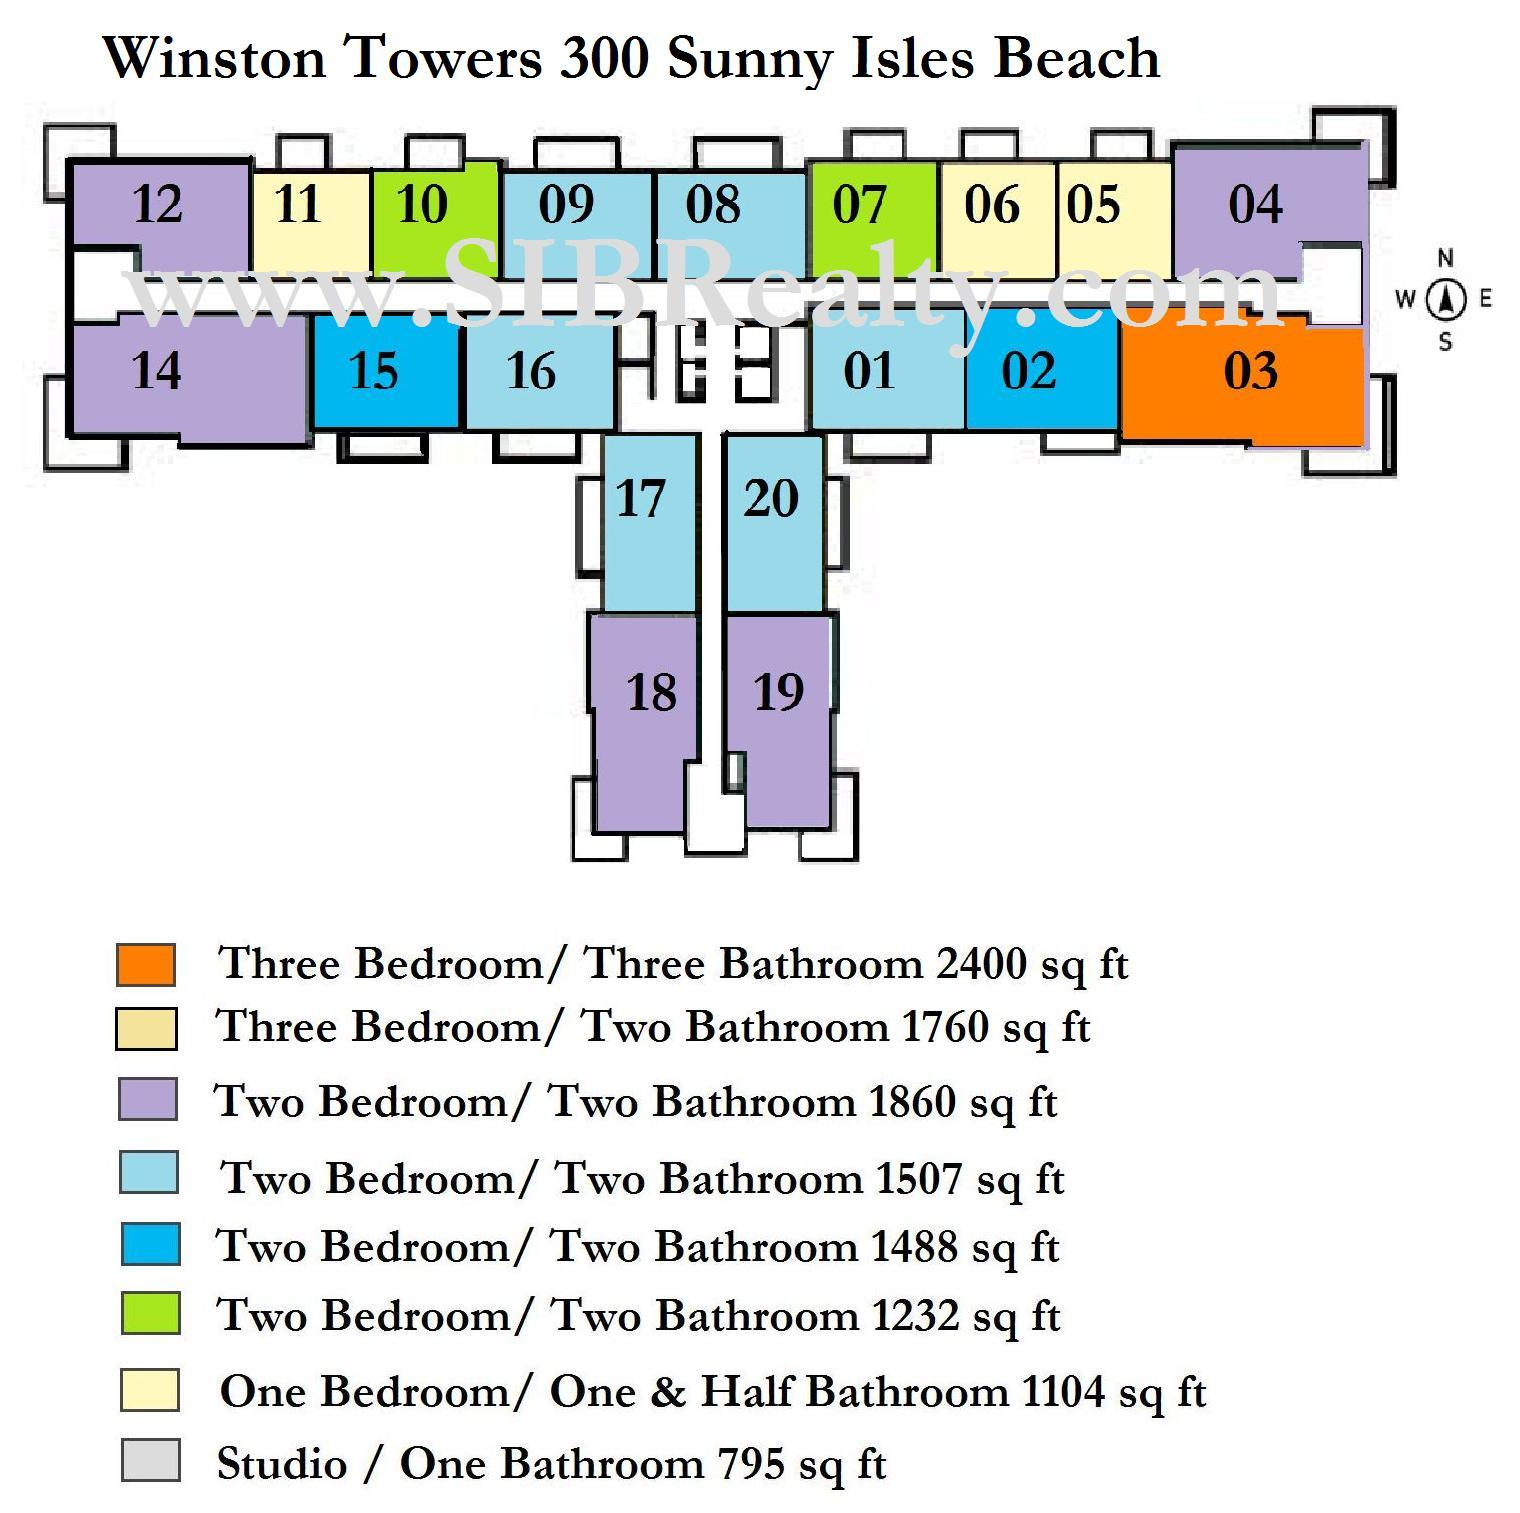 Winston Towers 300 Sunny Isles Beach Site Plan